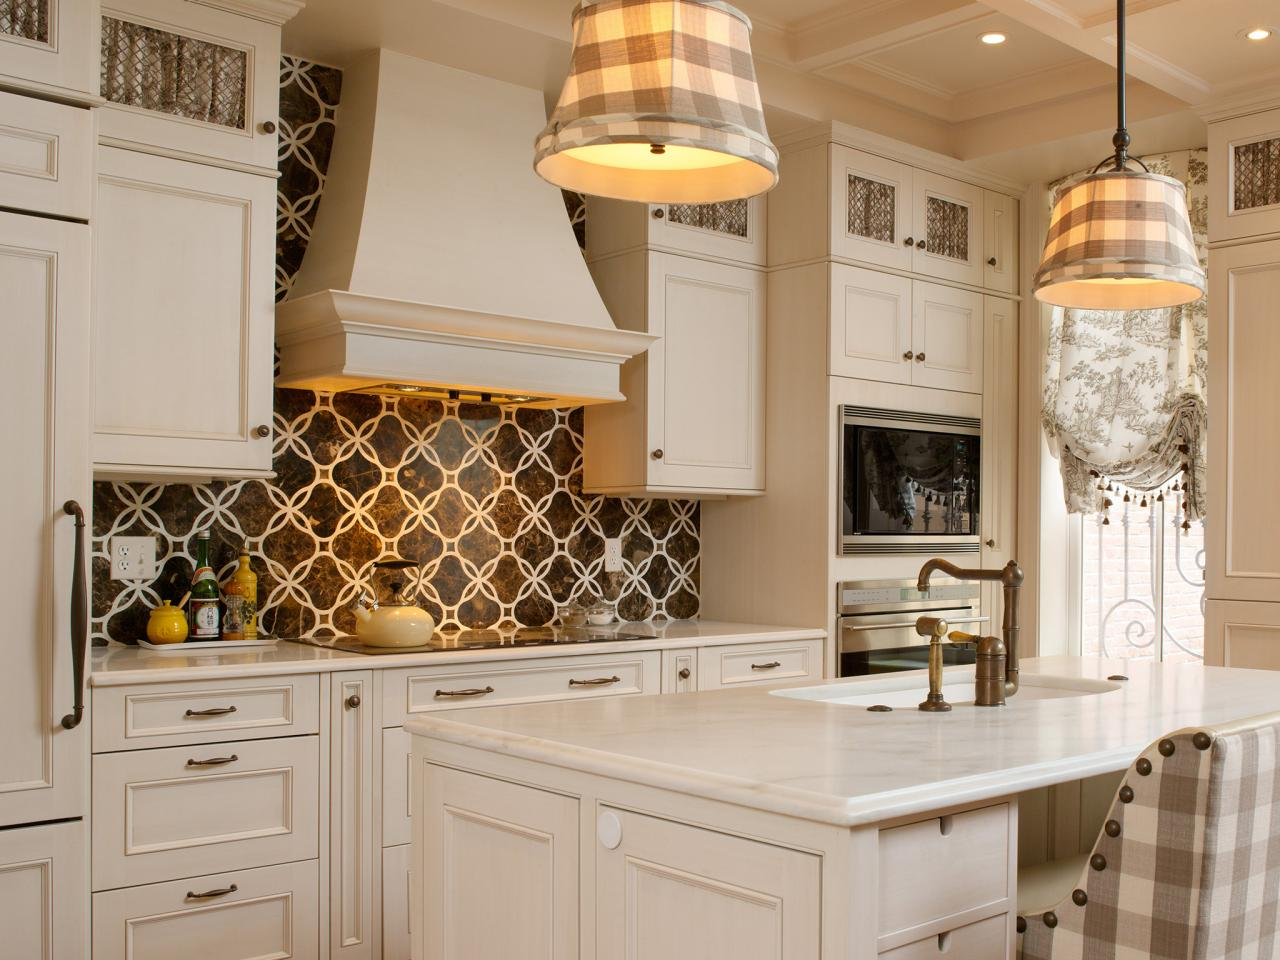 Backsplash Designs Decoration Kitchen Backsplash Design Ideas